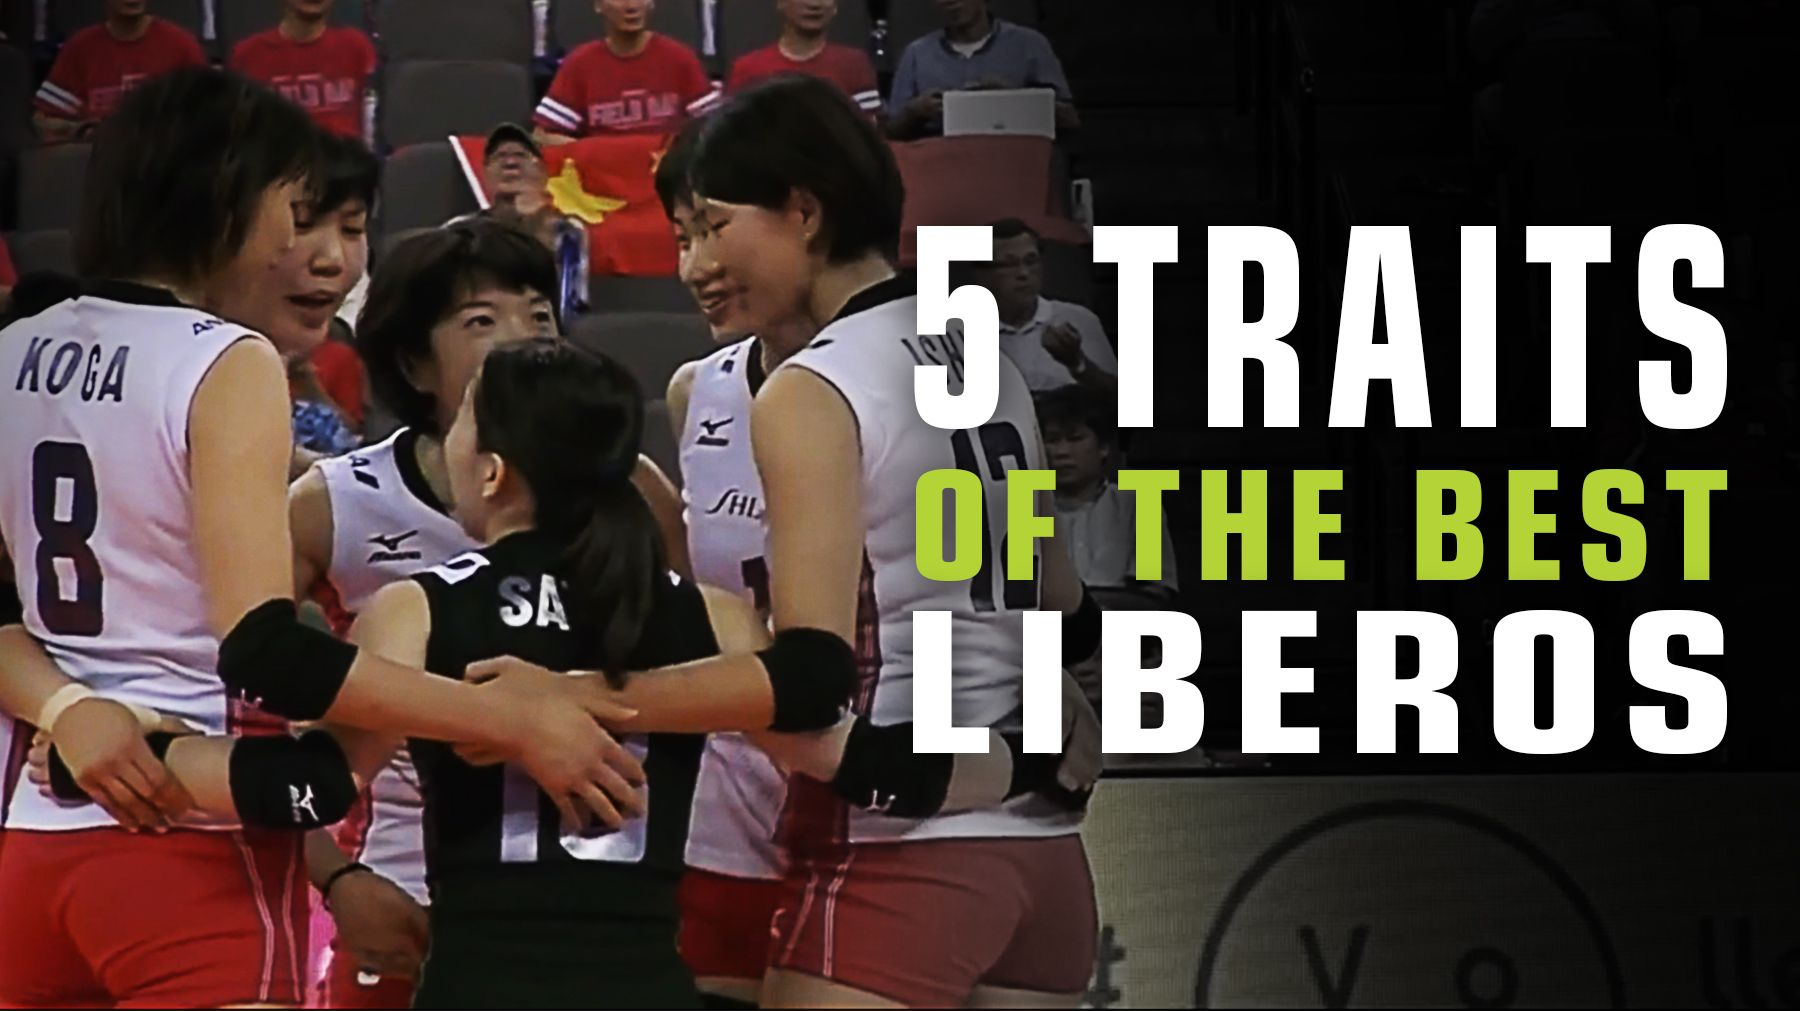 Five Things That Make A Good Libero The Art Of Coaching Volleyball Coaching Volleyball Volleyball Inspiration Volleyball Workouts